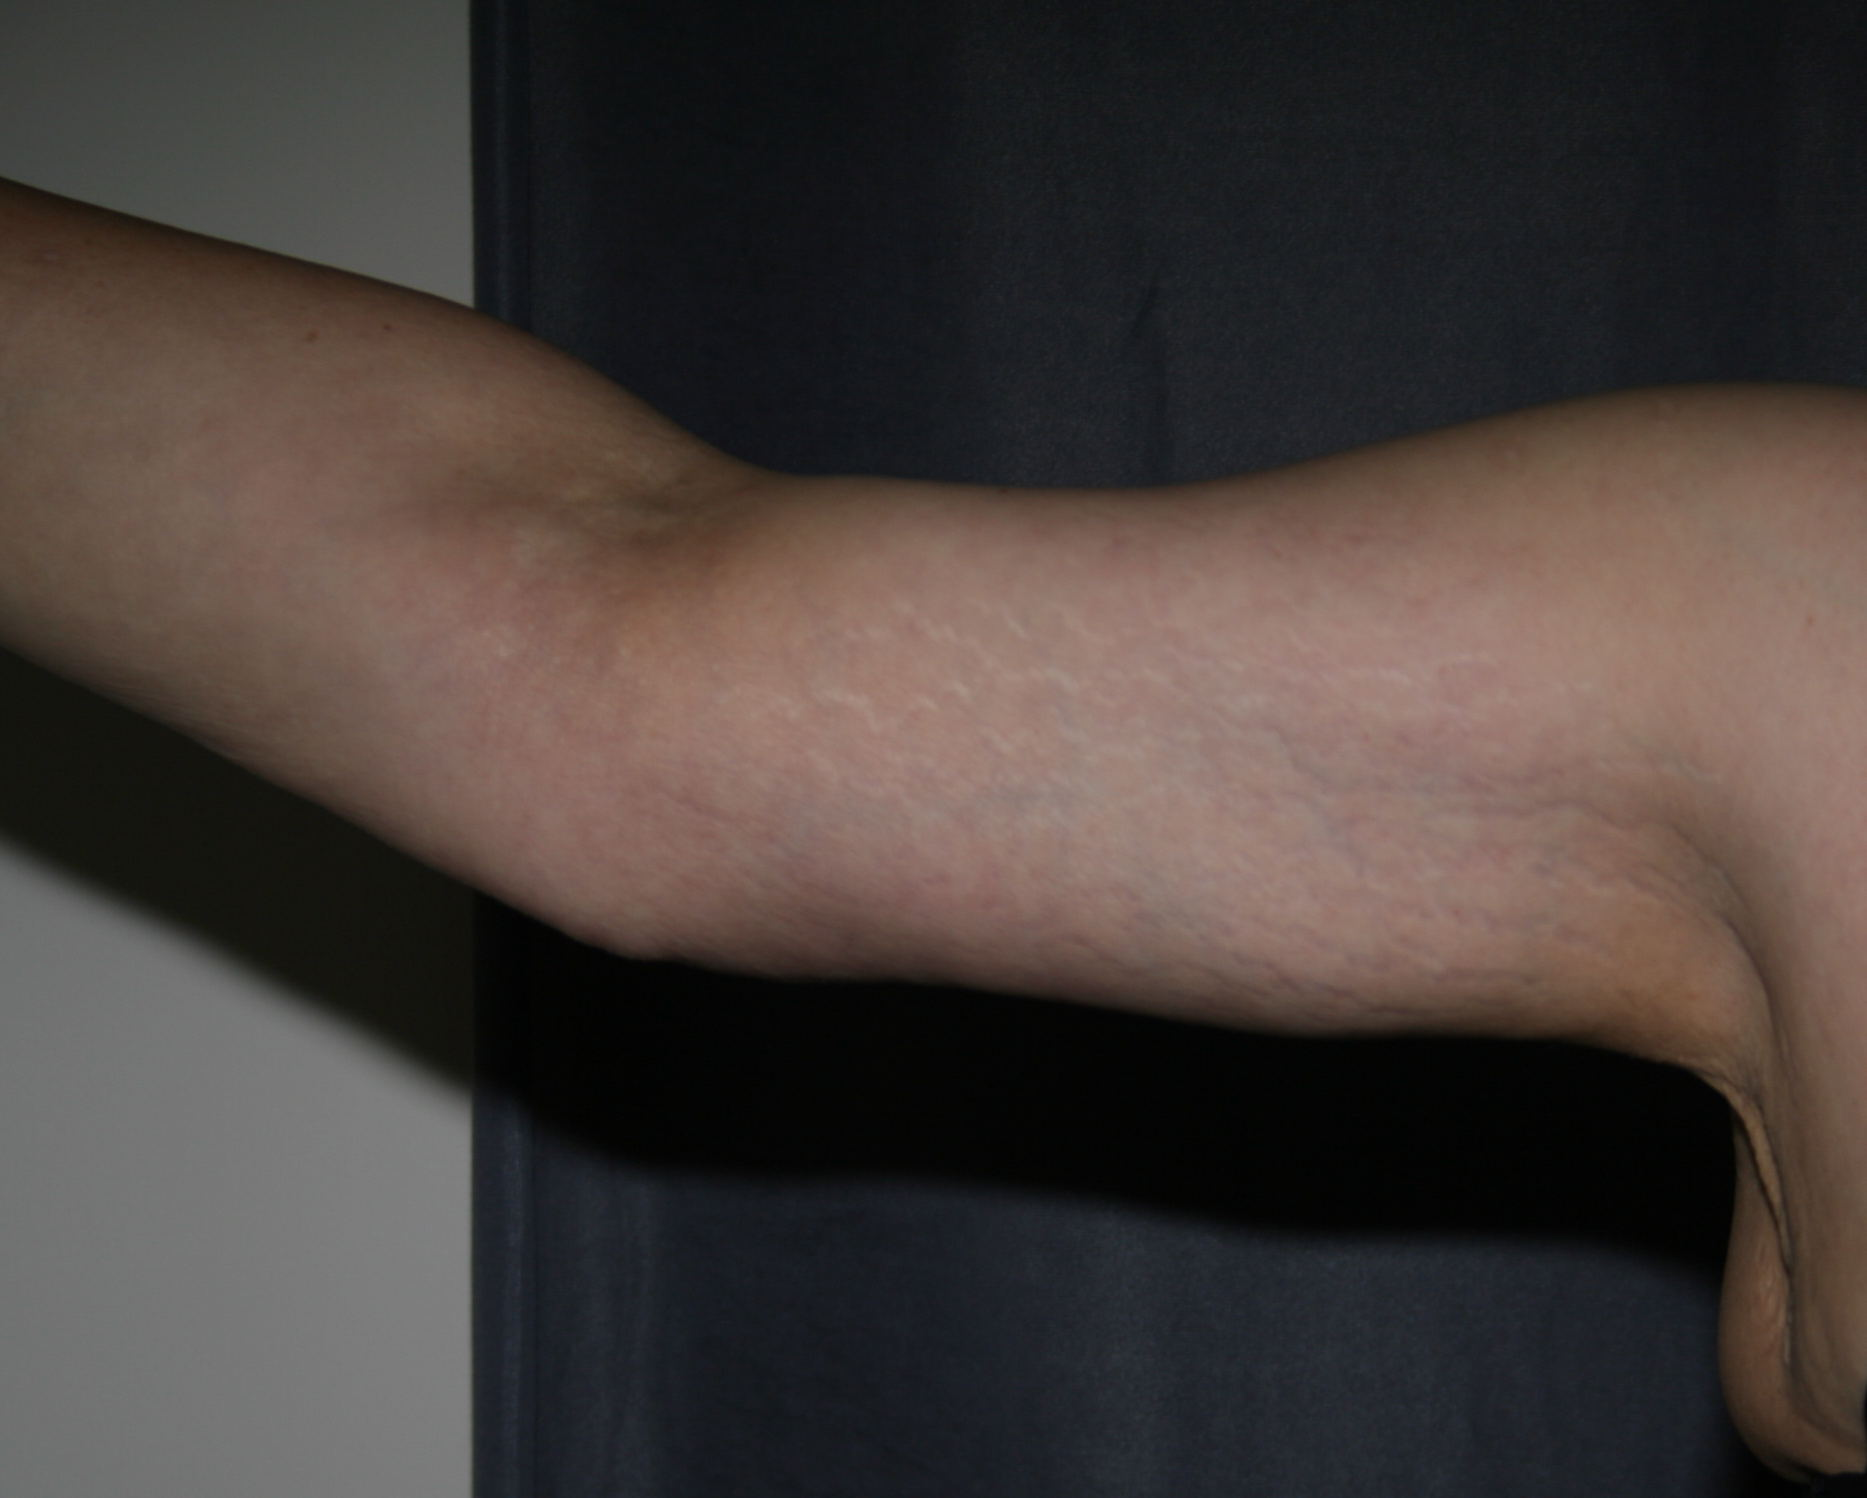 Right Arm after weight loss and after Arm Lift (Brachioplasty)